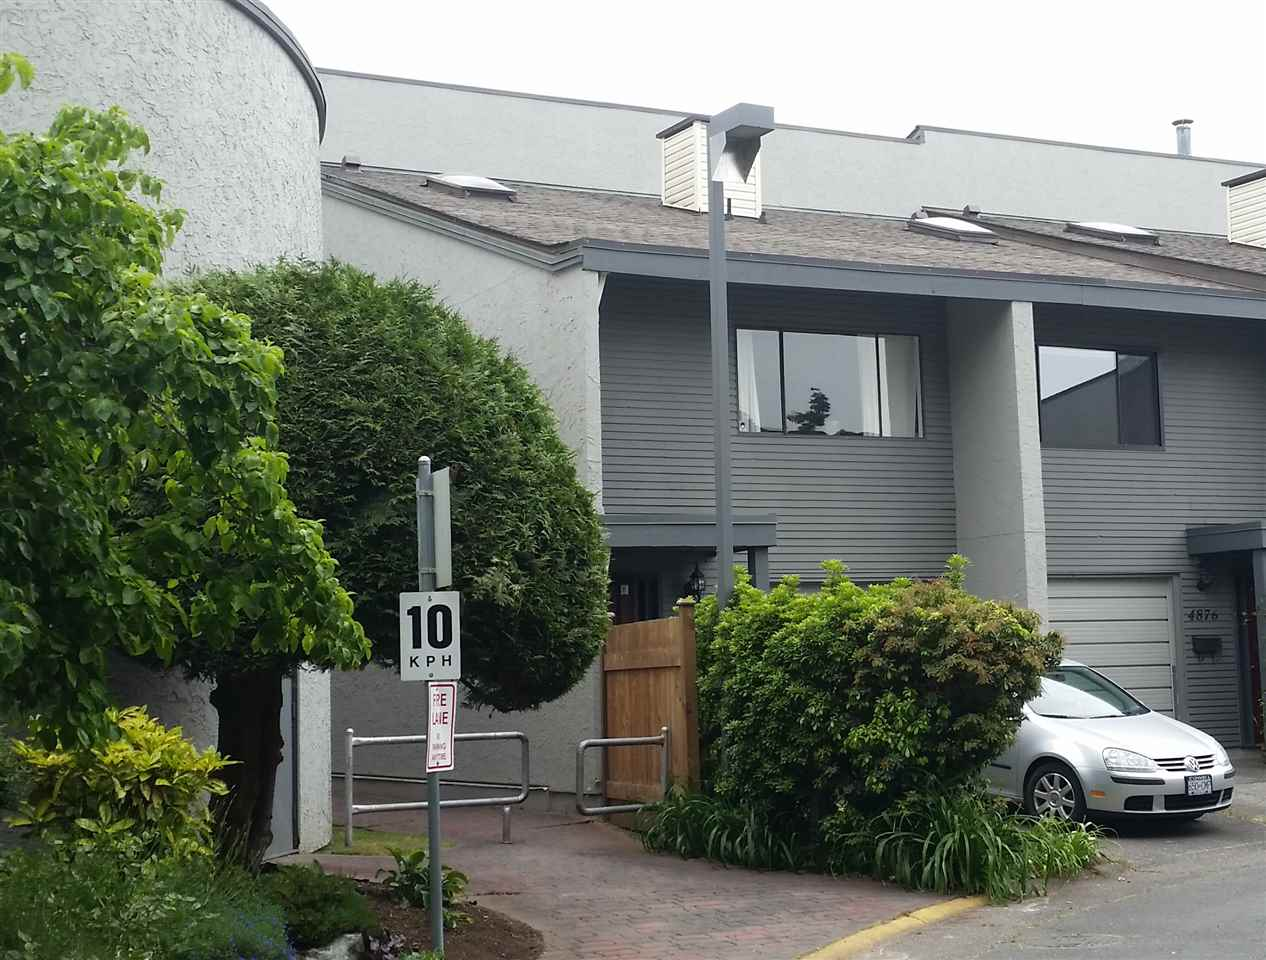 Photo 17: 4882 TURNBUCKLE WYND in Delta: Ladner Elementary Townhouse for sale (Ladner)  : MLS® # R2072644